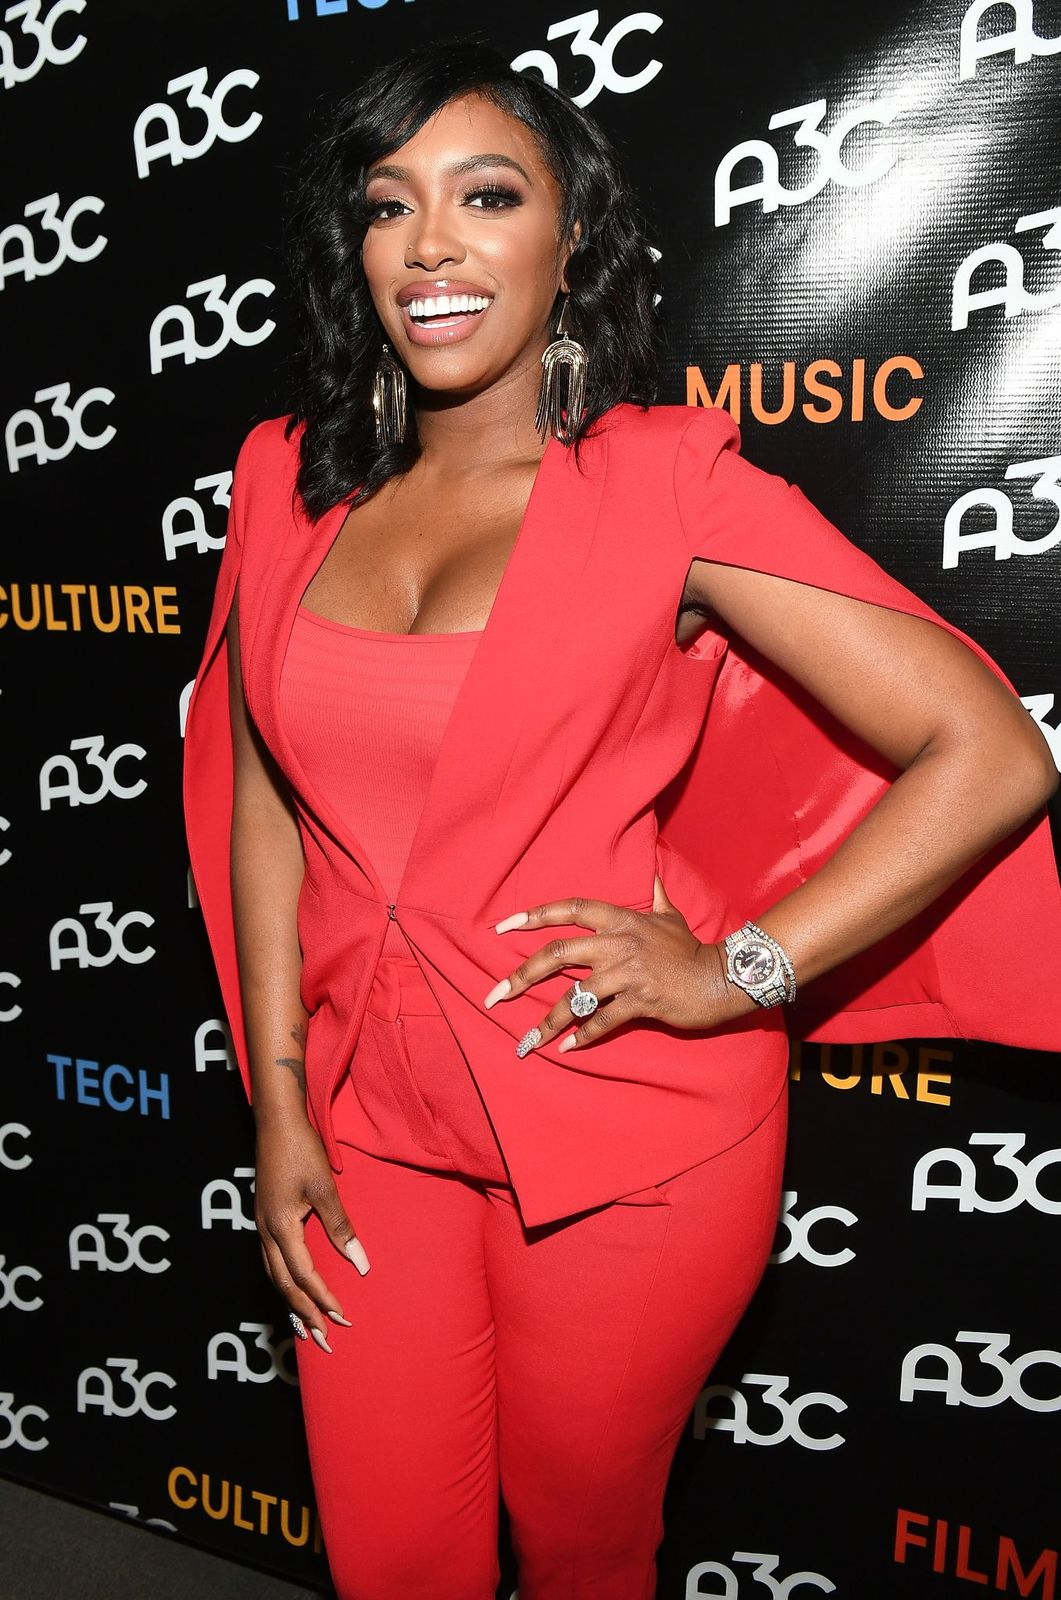 Porsha Williams arrives at the A3C Festival & Conference on October 10, 2019.   Photo: Getty Images.